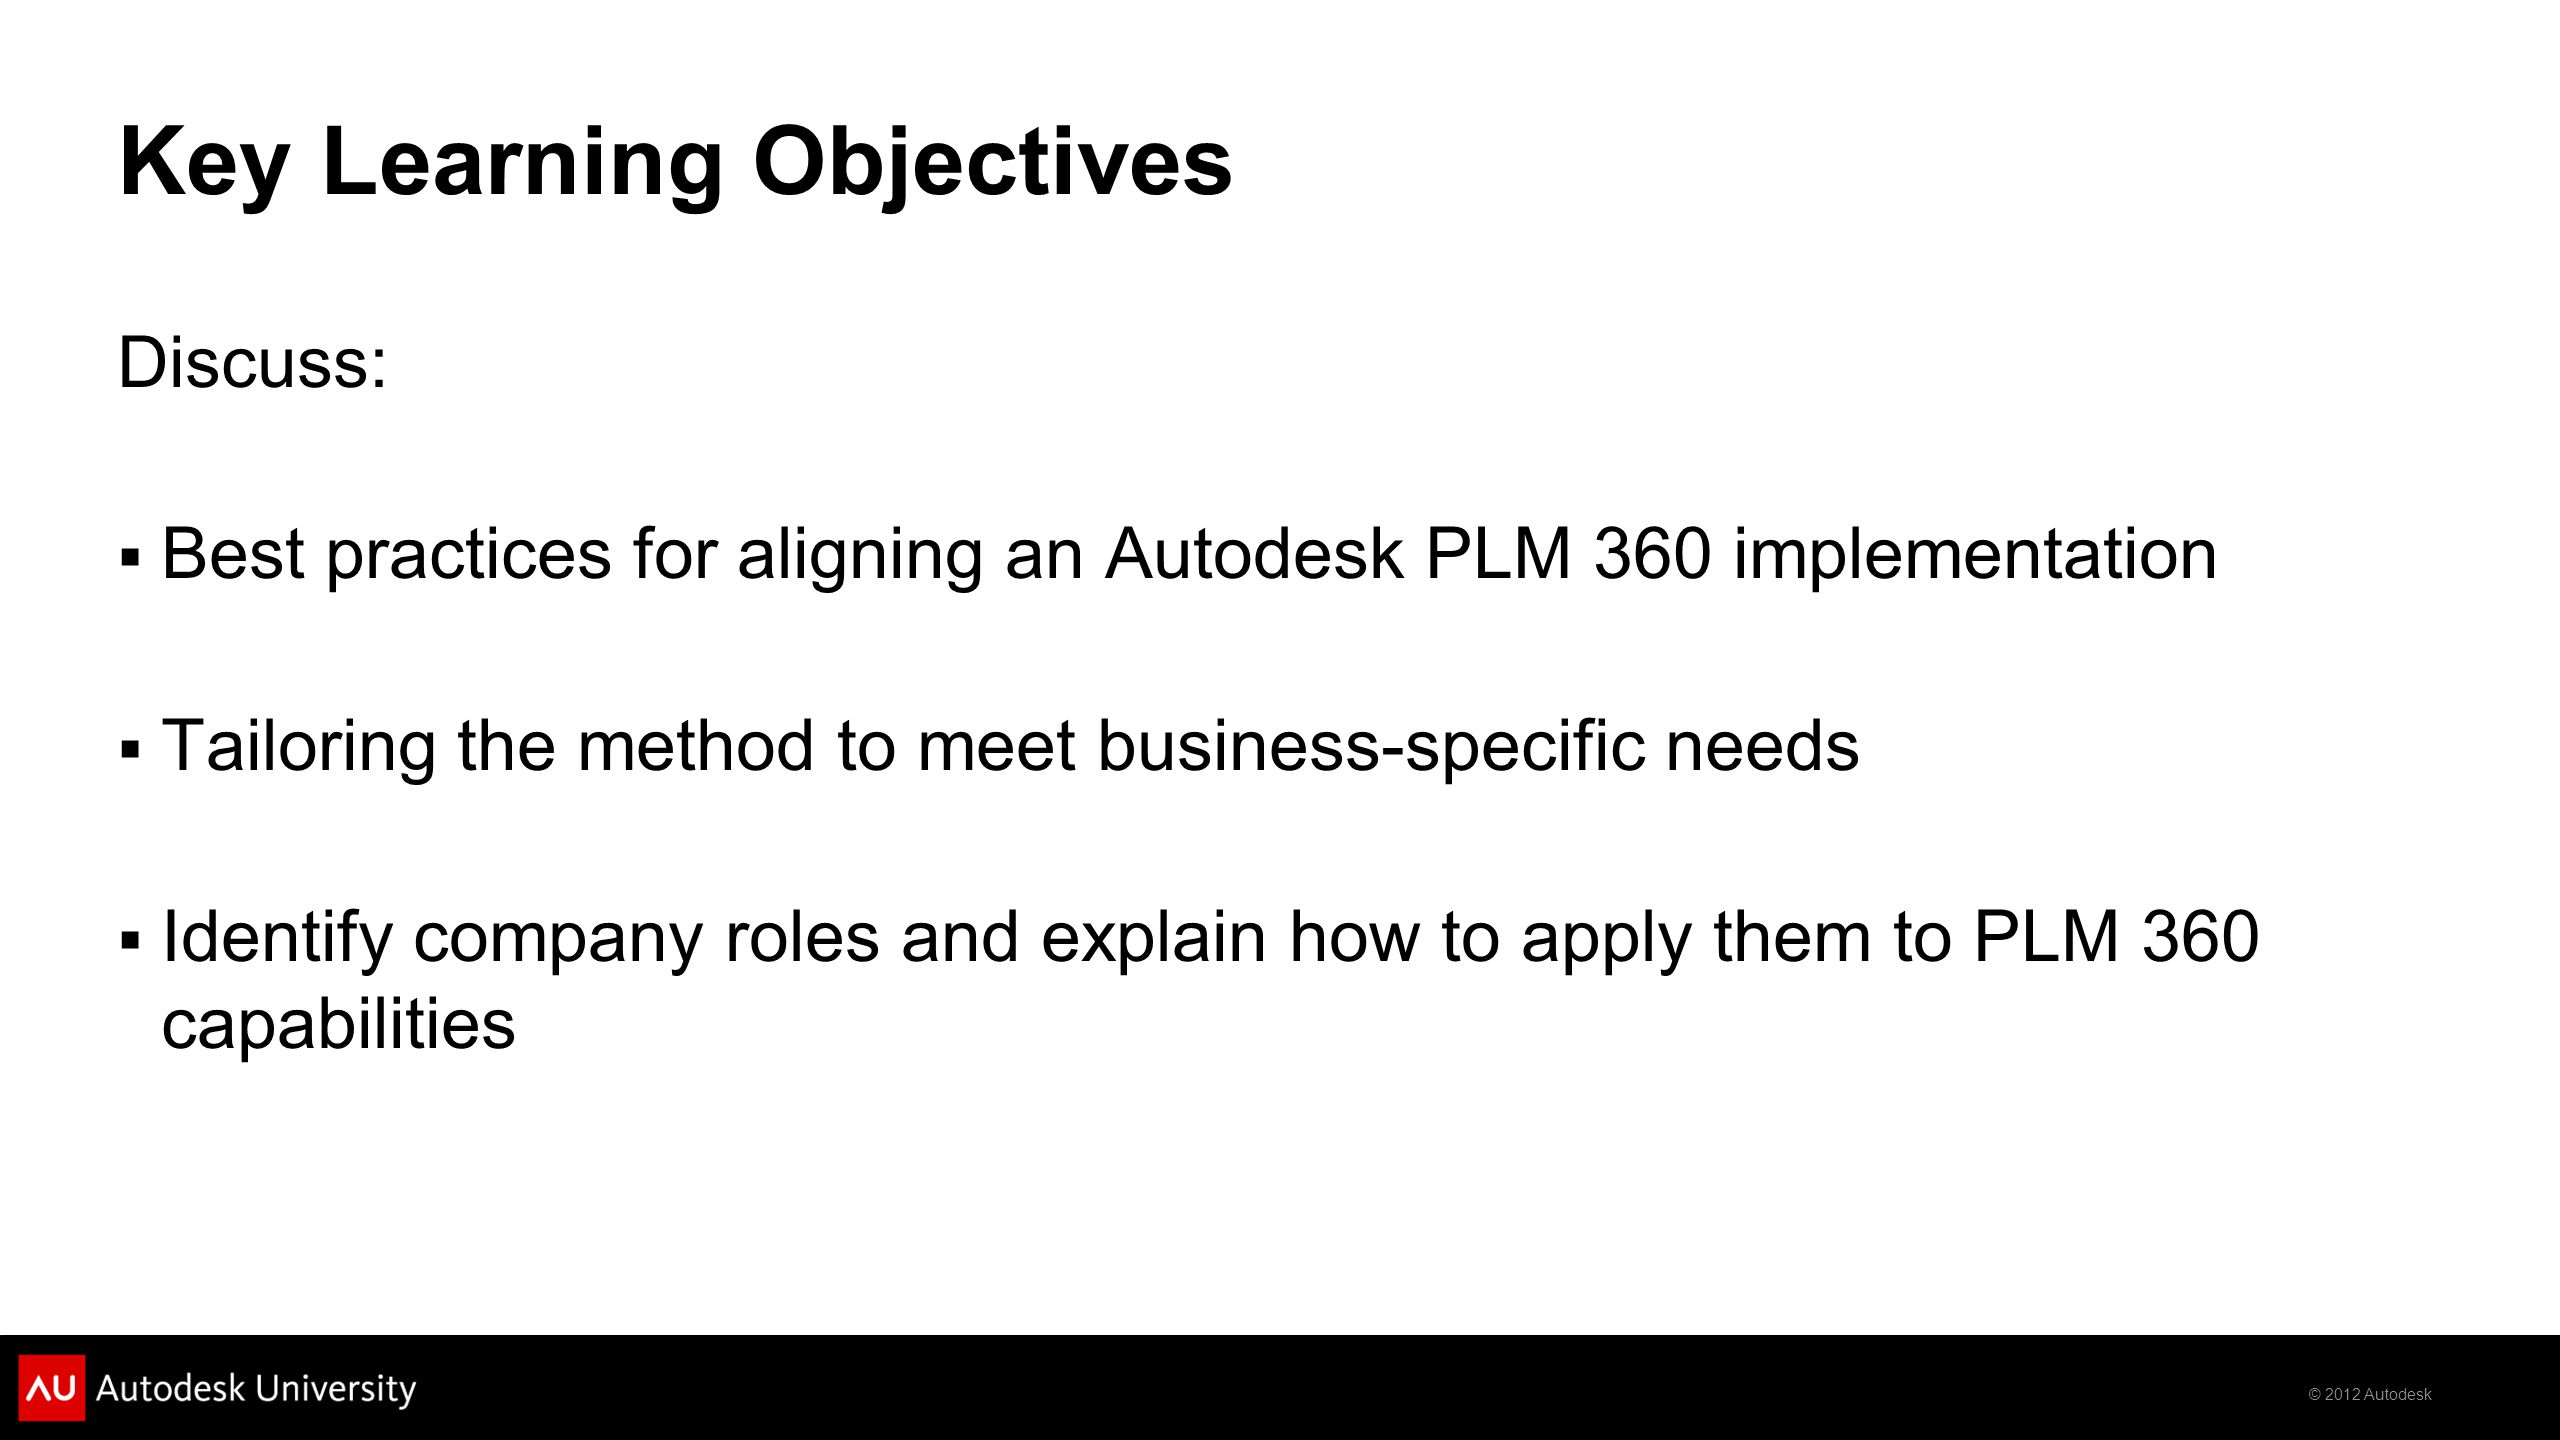 © 2012 Autodesk Key Learning Objectives Discuss:  Best practices for aligning an Autodesk PLM 360 implementation  Tailoring the method to meet business-specific needs  Identify company roles and explain how to apply them to PLM 360 capabilities